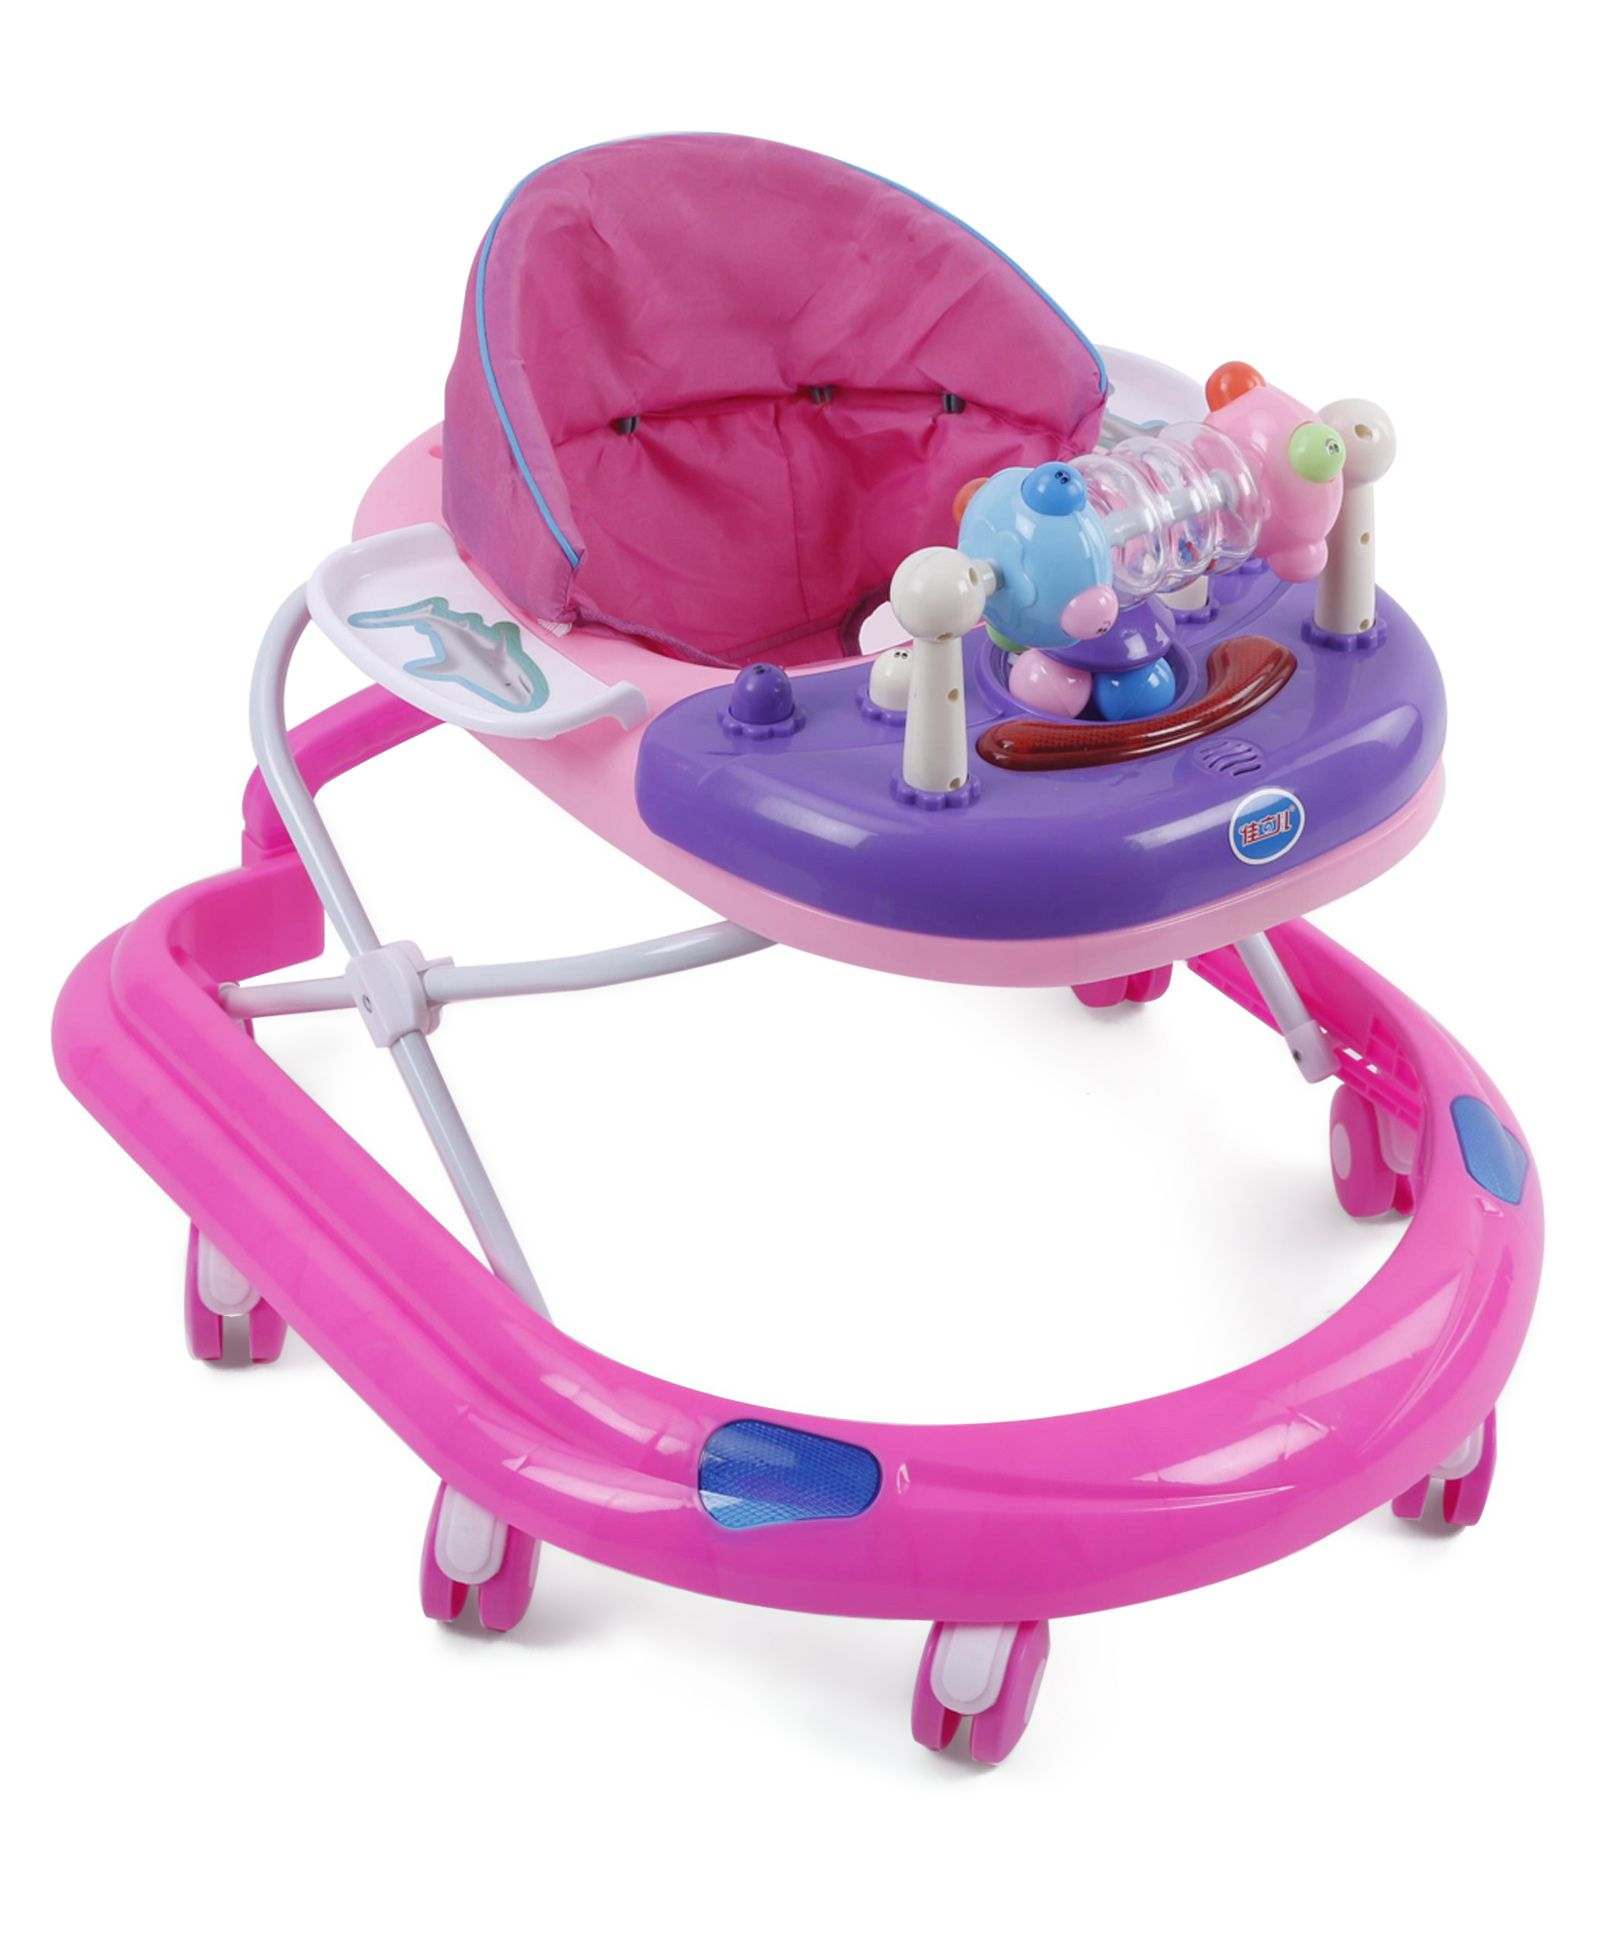 Baby Musical Walker With Play Tray - Pink Purple